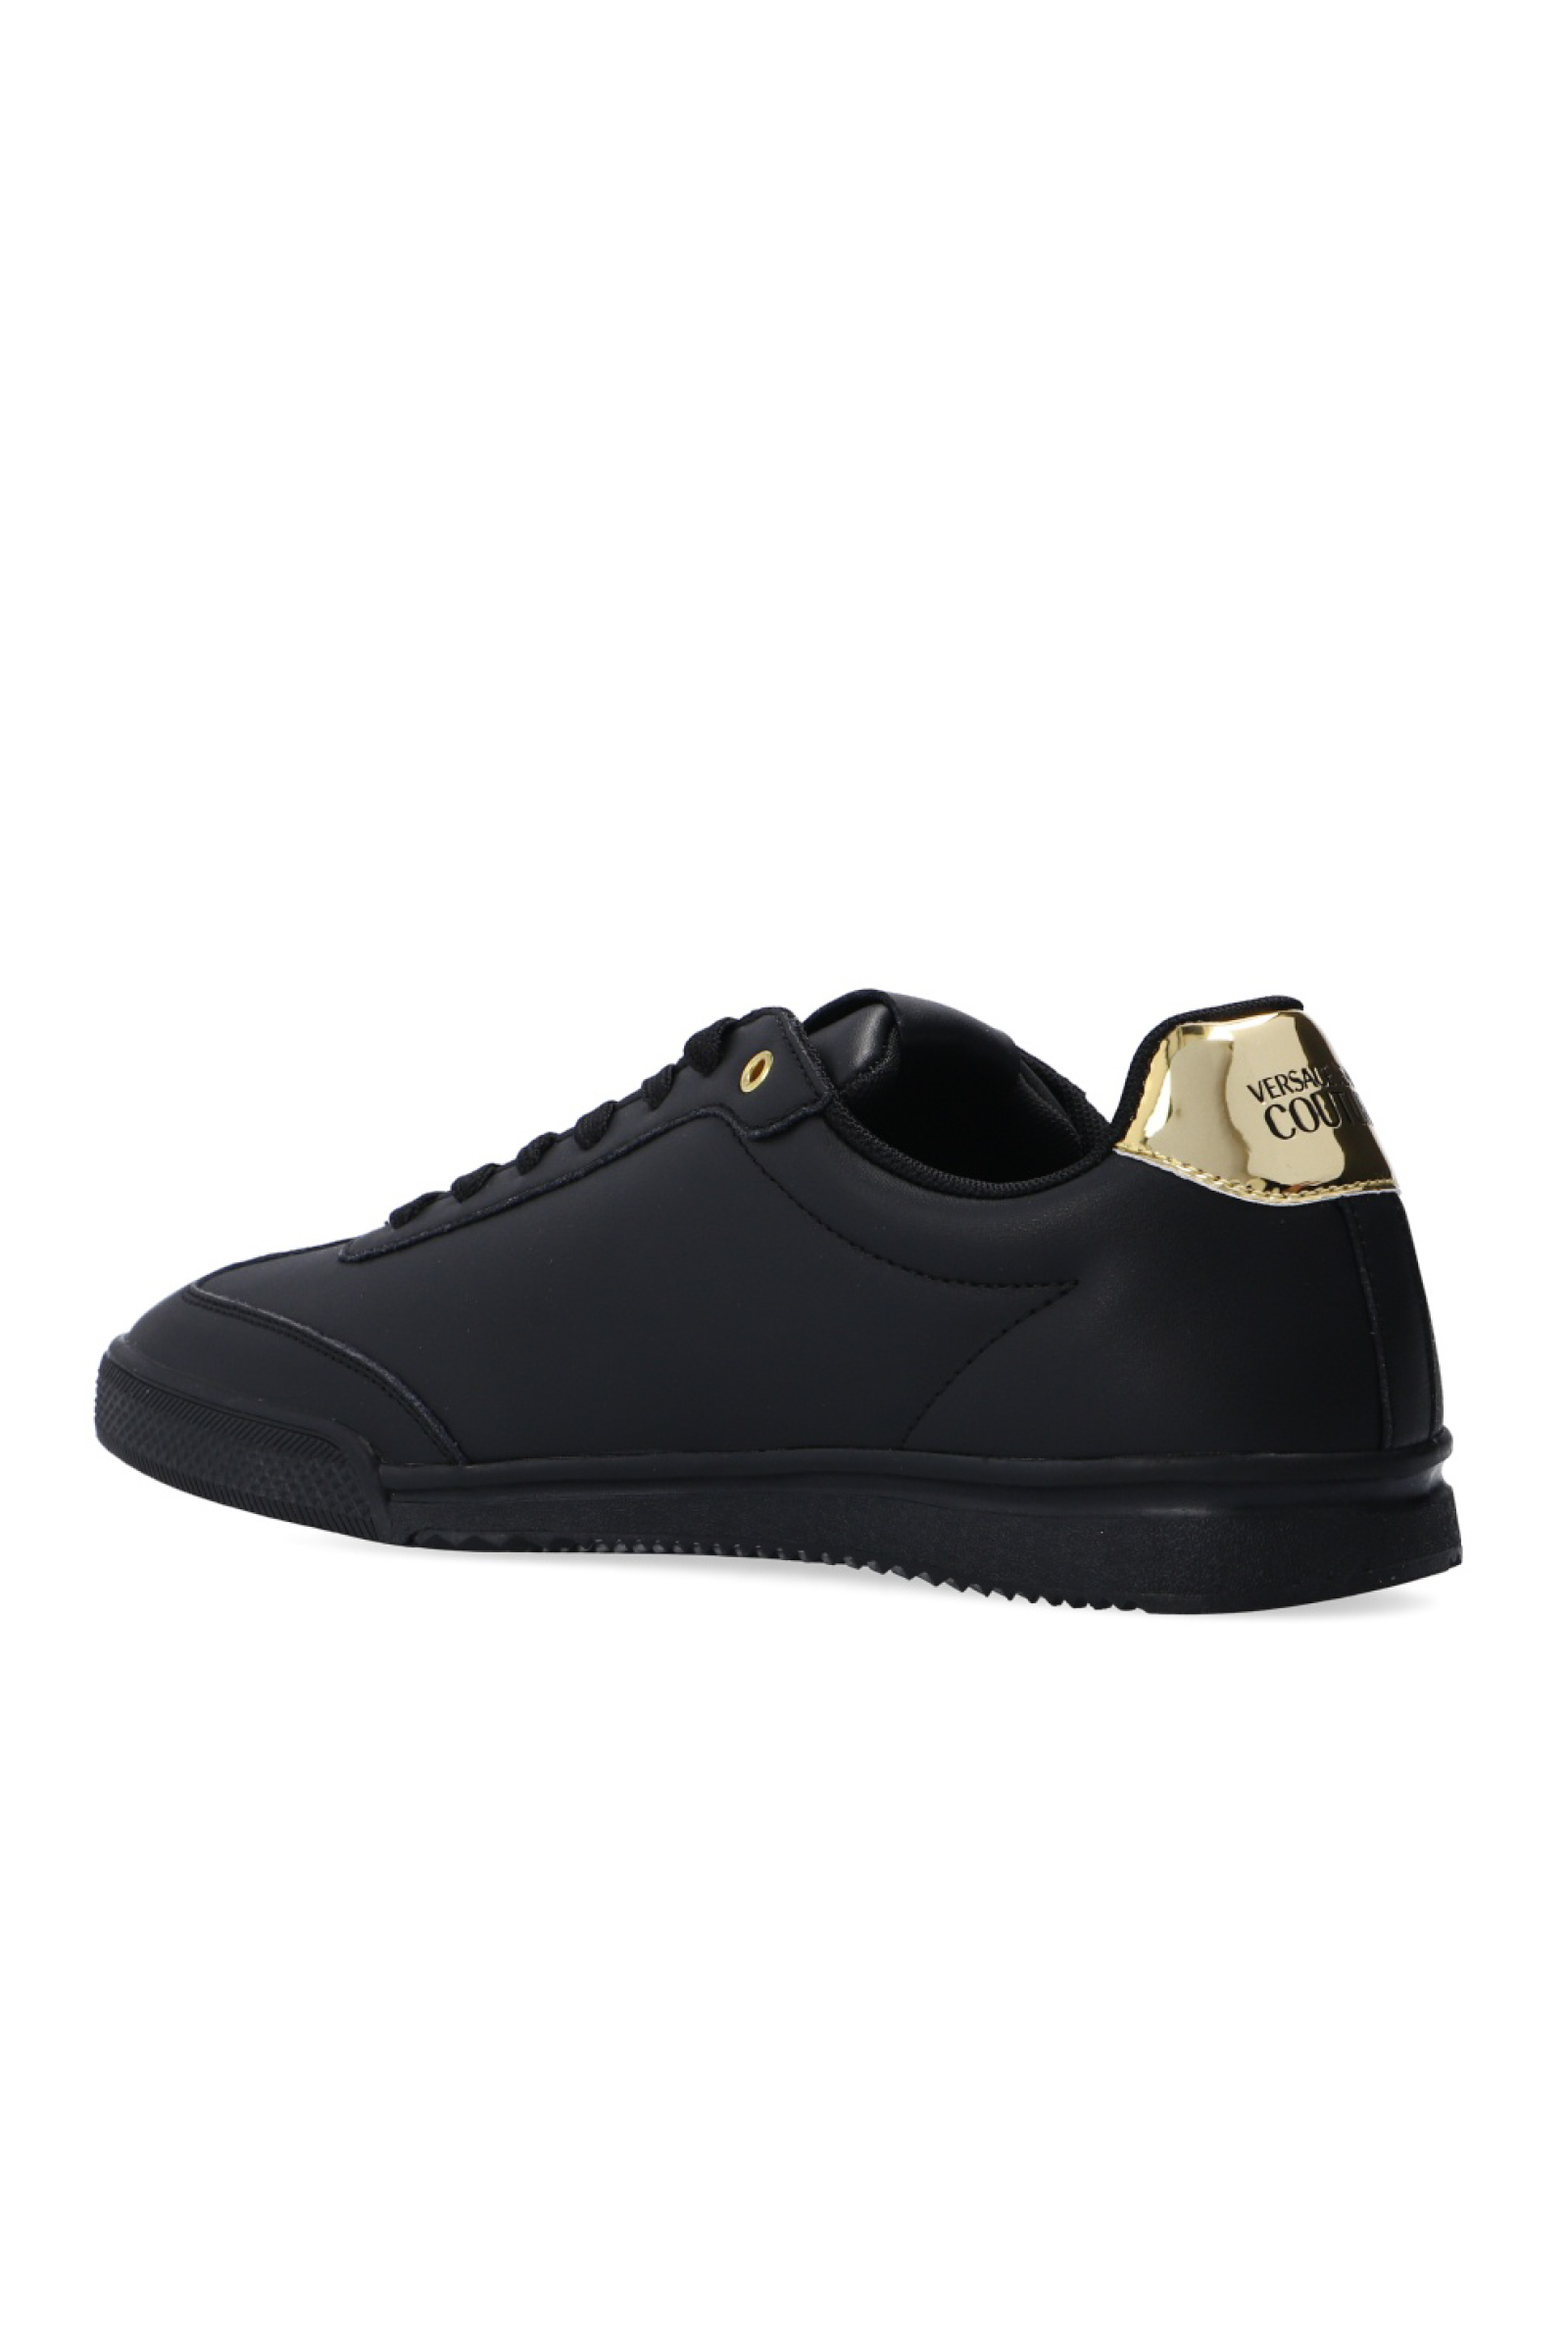 VERSACE JEANS COUTURE Men's Shoes VERSACE JEANS COUTURE | Shoes | E0YZBSO3 71845M27